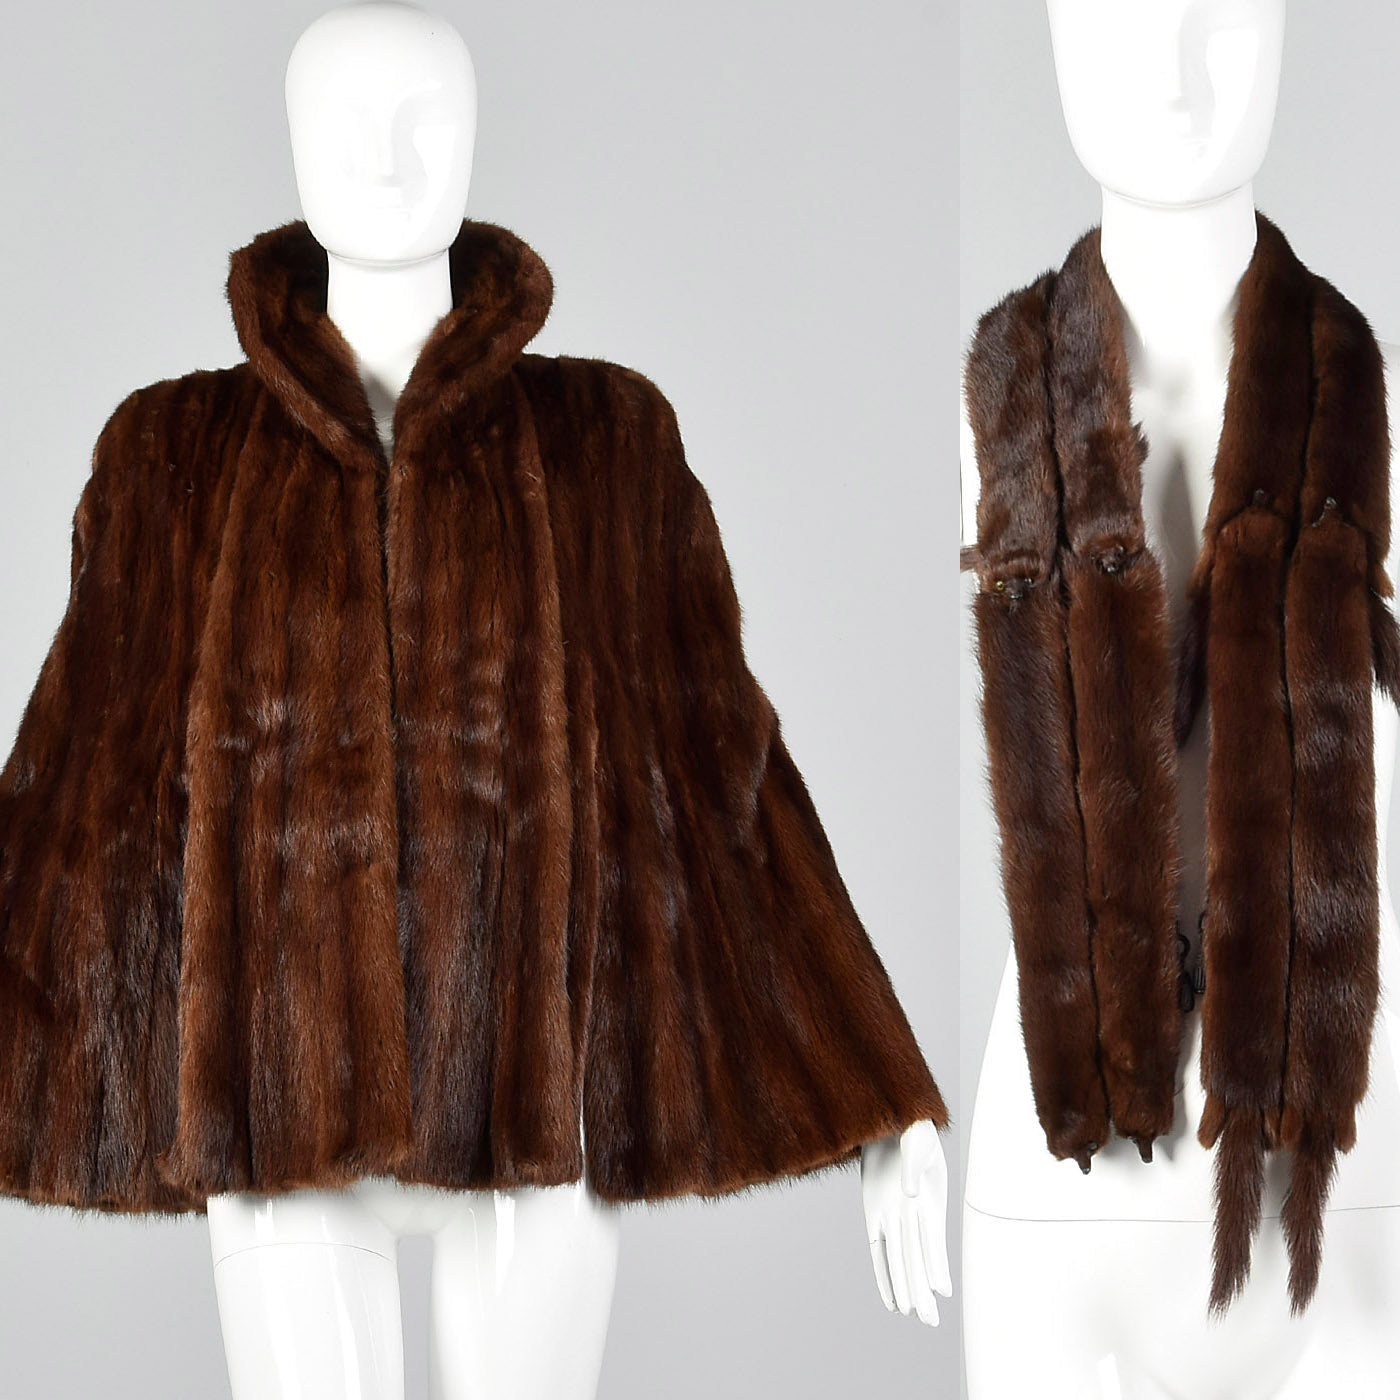 1950s Mink Fur Stole with Whole Body Mink Wrap